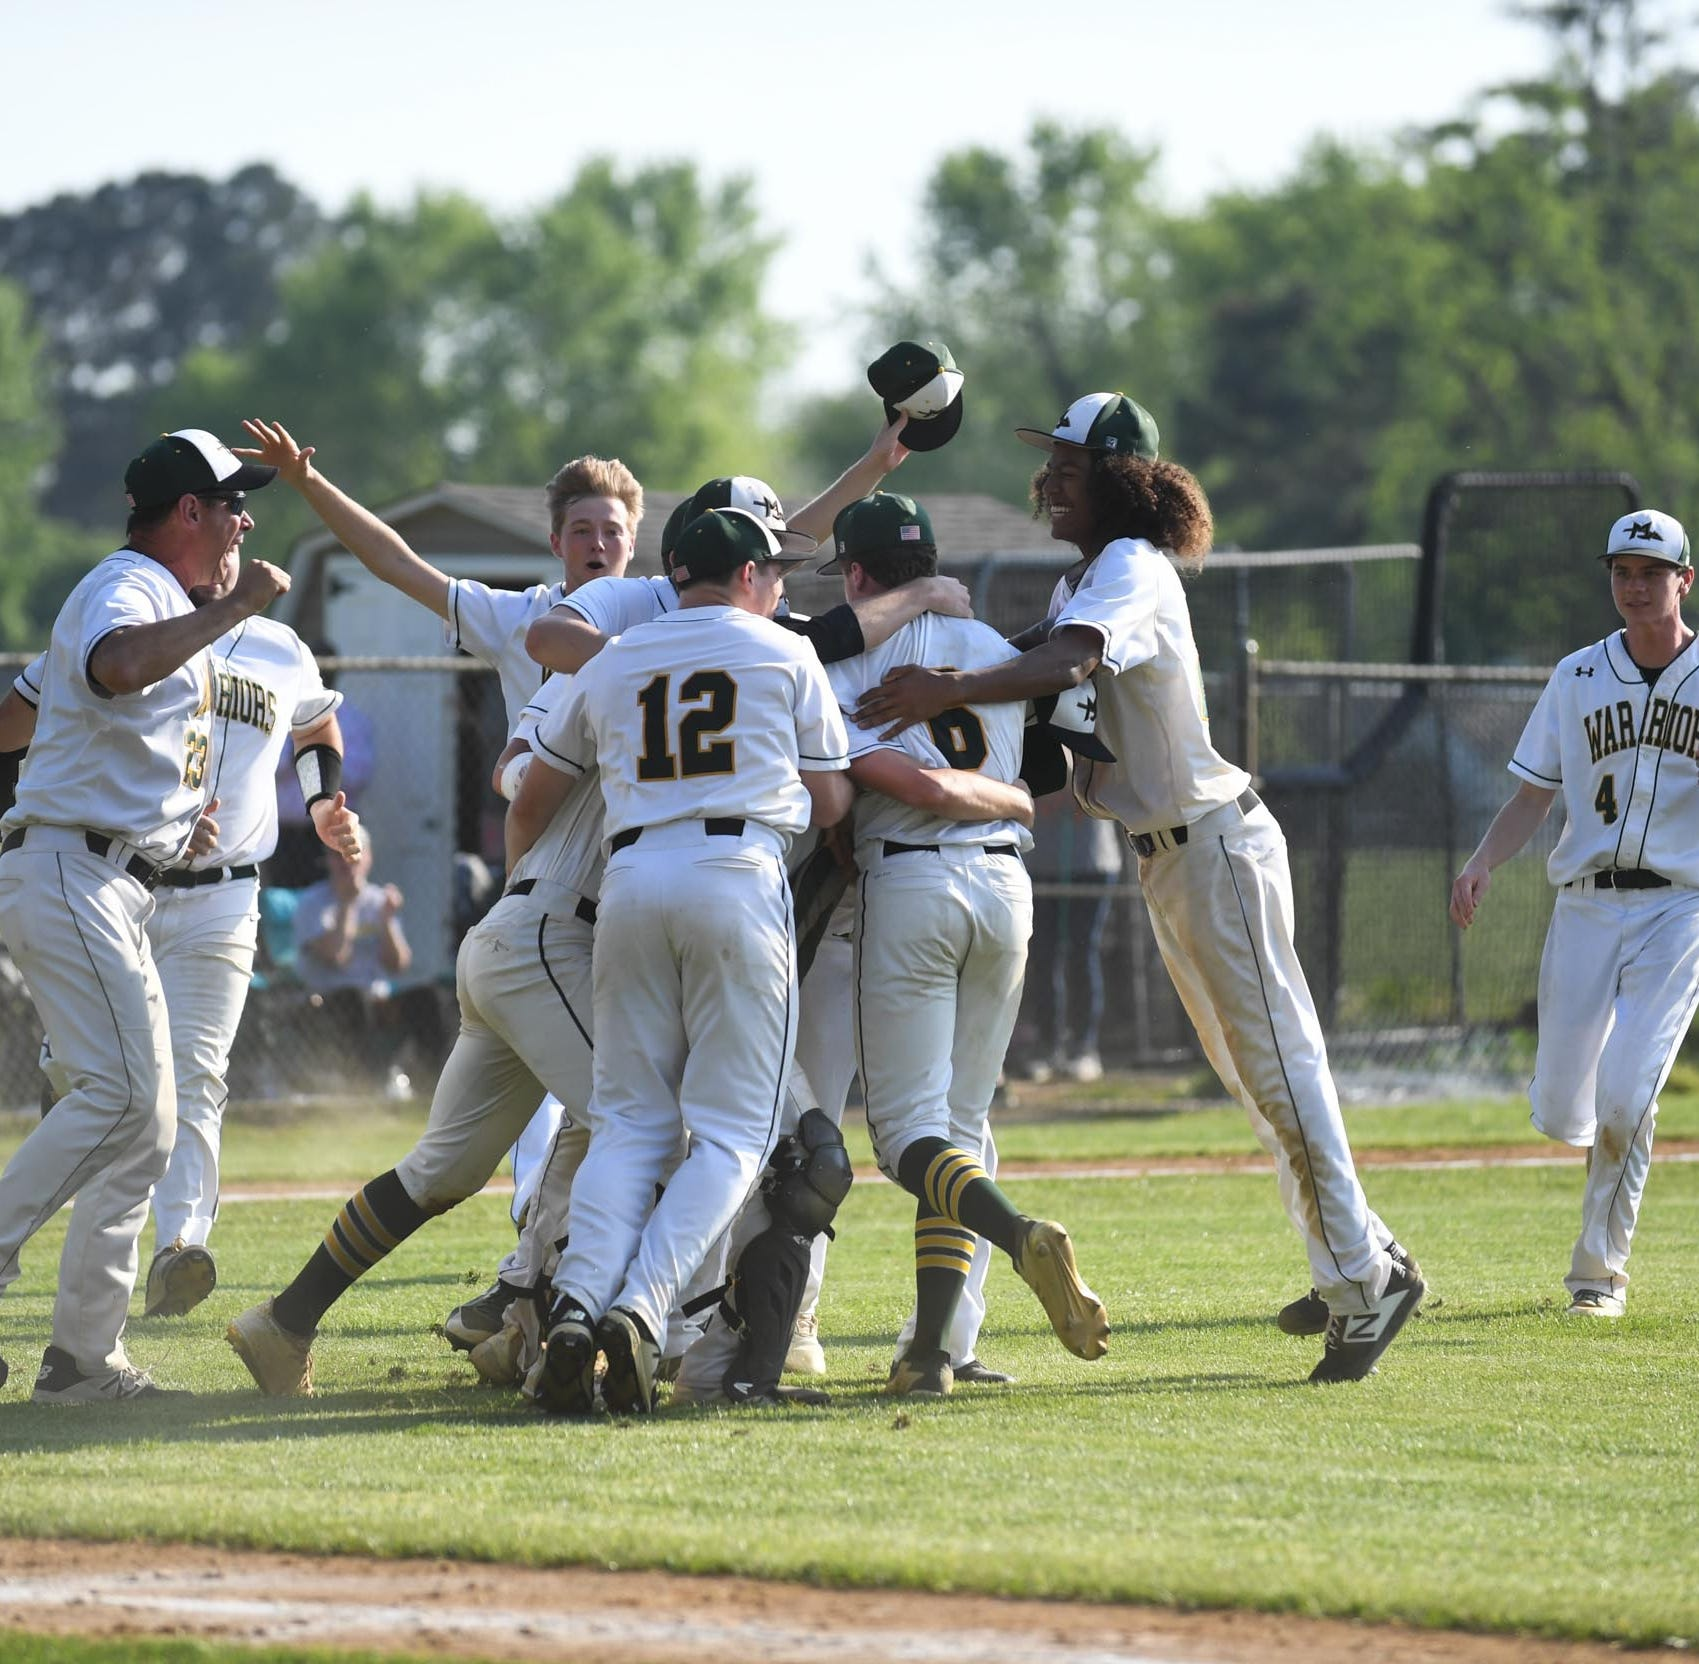 Mardela baseball wins first Bayside South title in program history